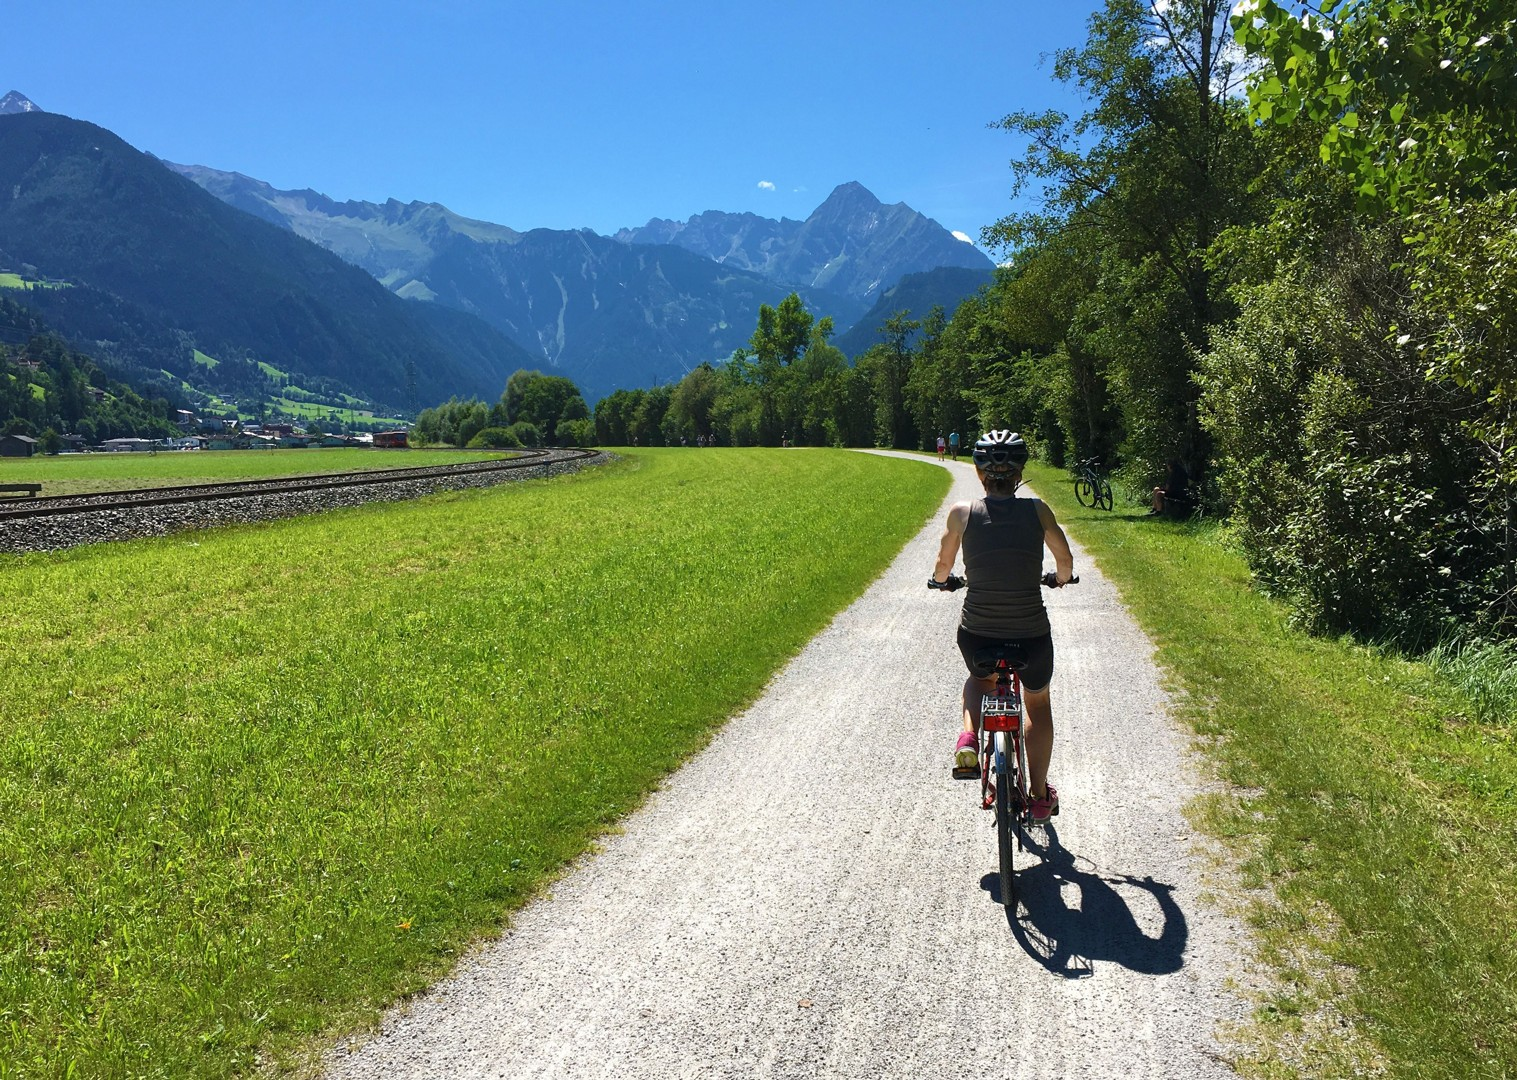 IMG_2535.jpg - Austria - Tauern Valleys - Self-Guided Leisure Cycling Holiday - Leisure Cycling